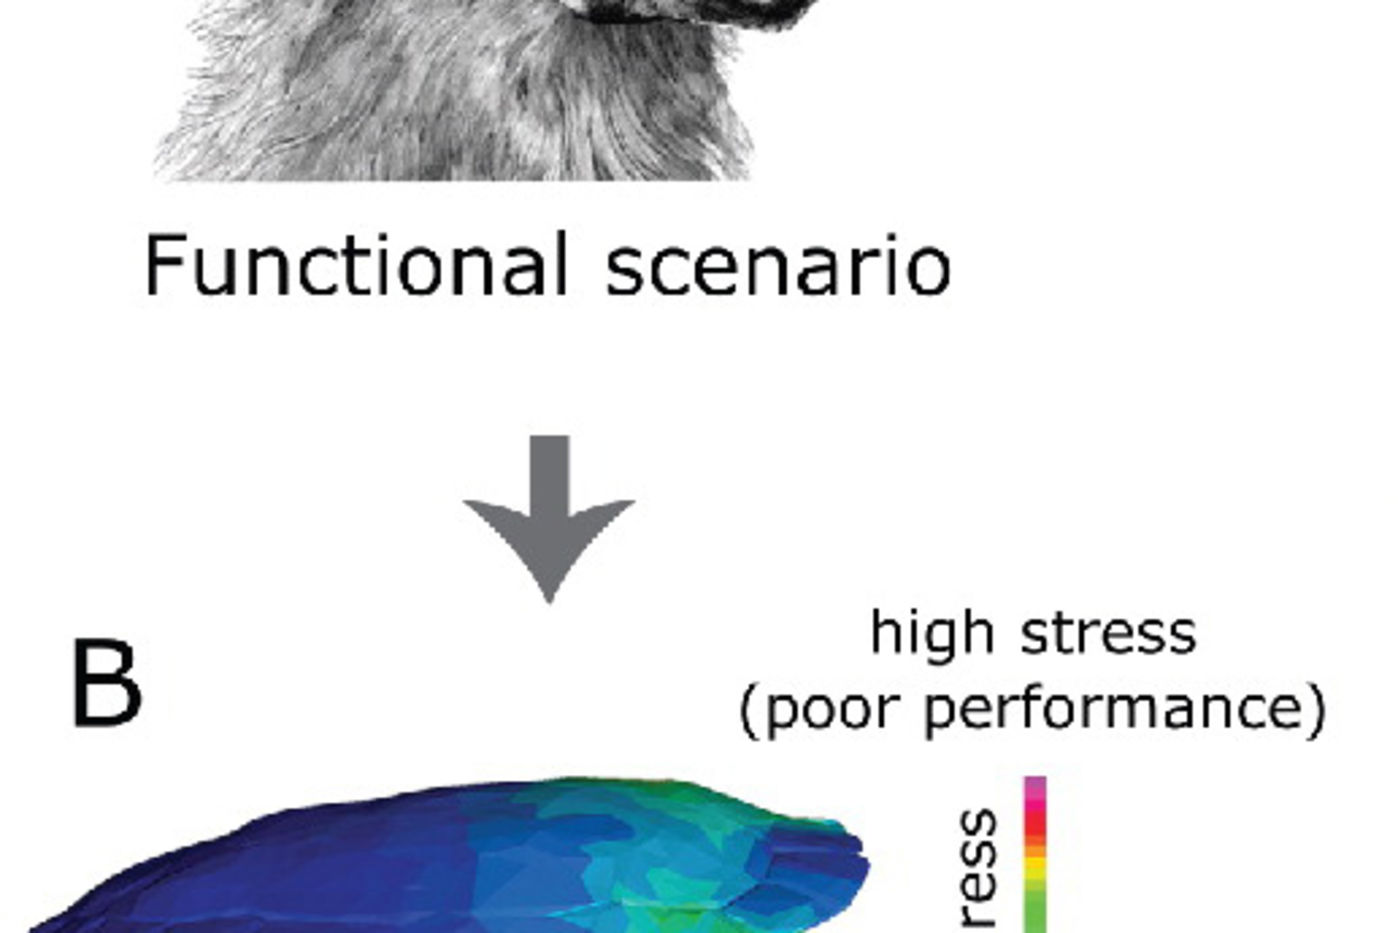 Illustration of a wolf biting down on a turtle shell, and a heat map showing how much stress different areas of the shell would receive from the bite